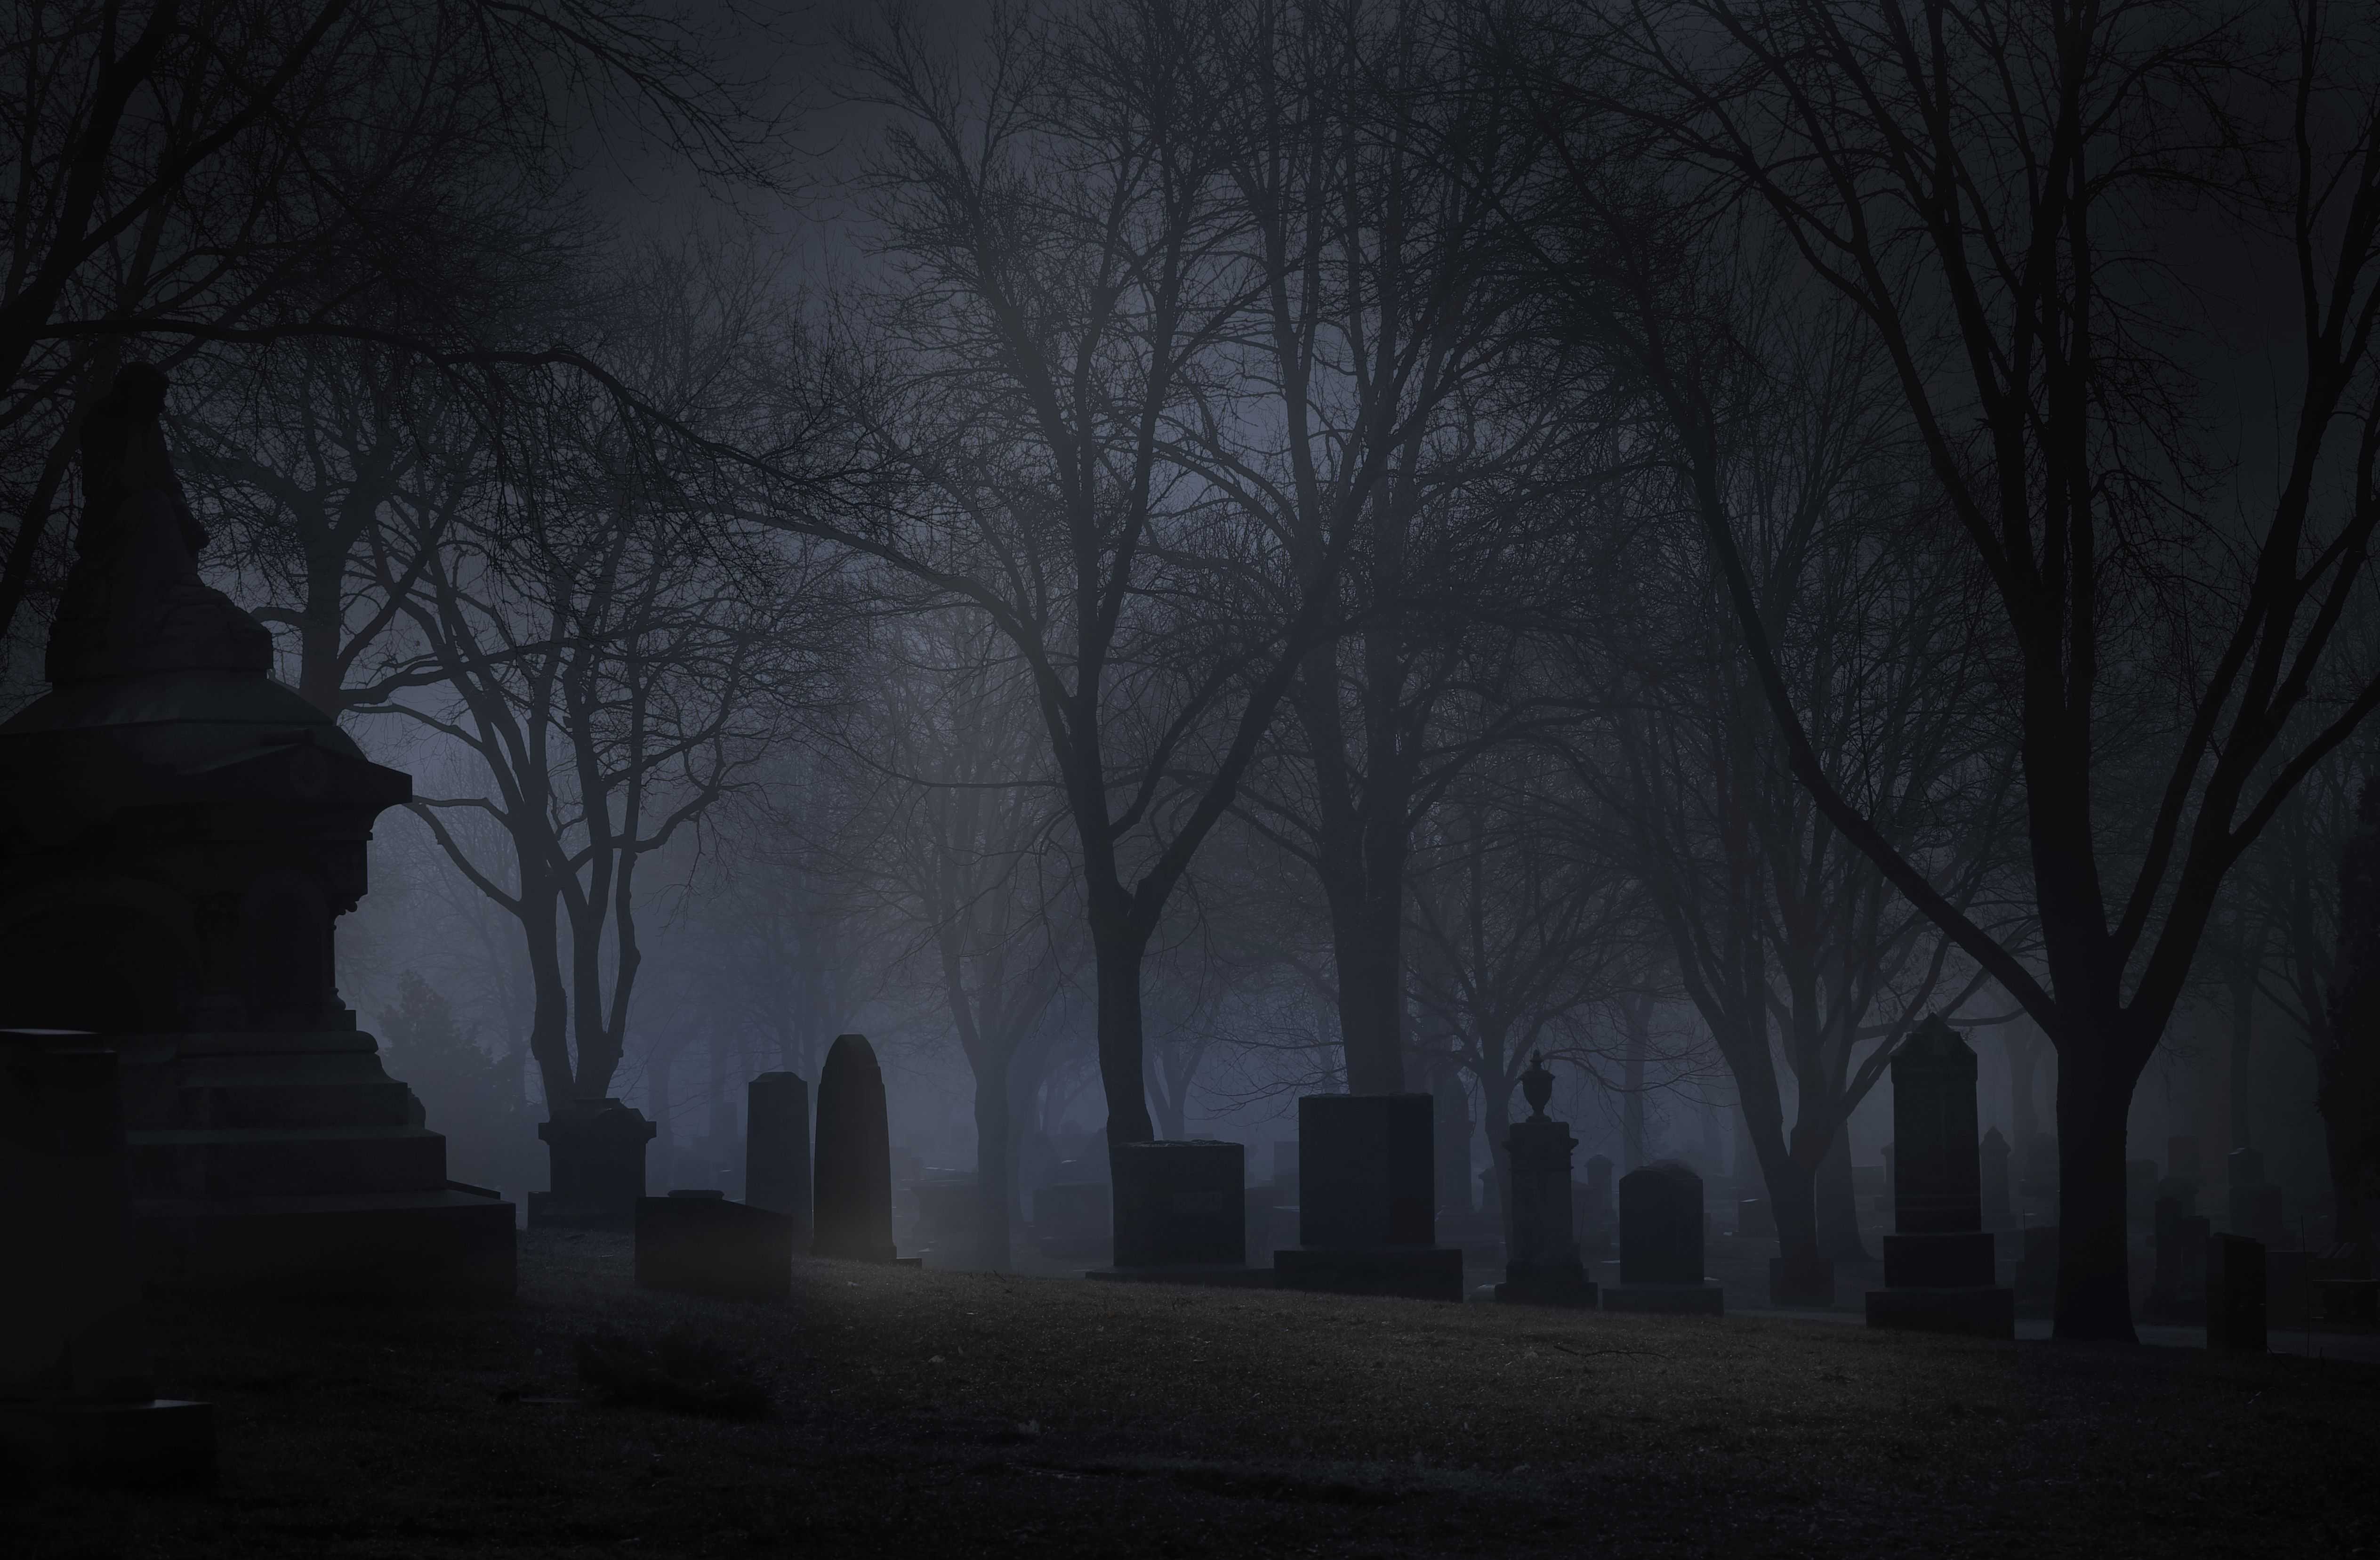 Spooky Cemetery at night with fog